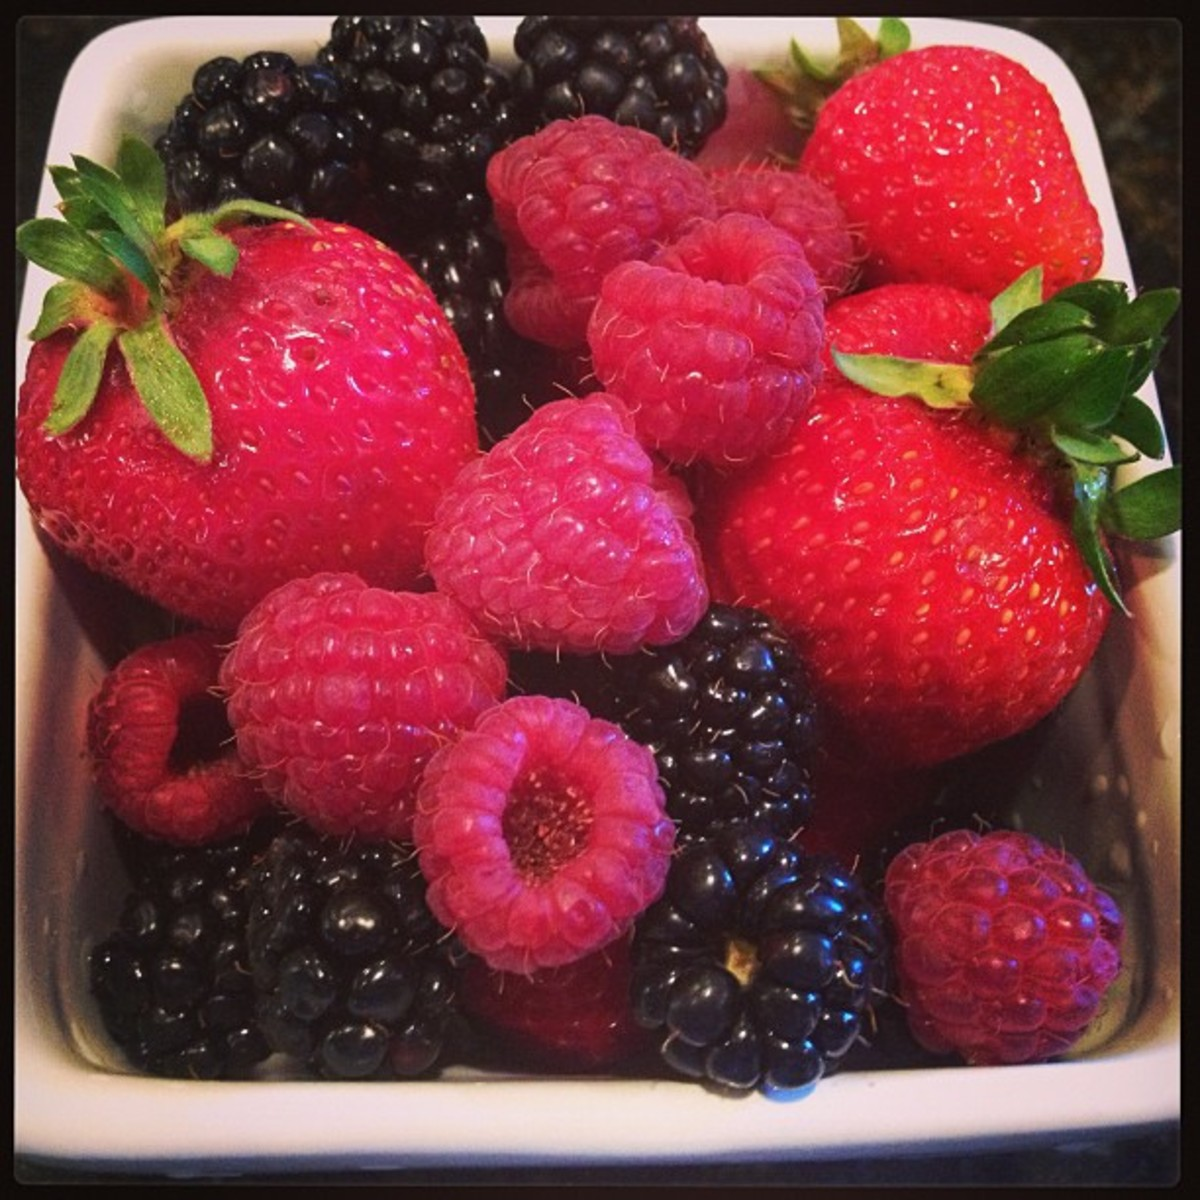 Fresh, organic berries make the best jam.  I try to either pick my own berries or buy them from a local farmers market.